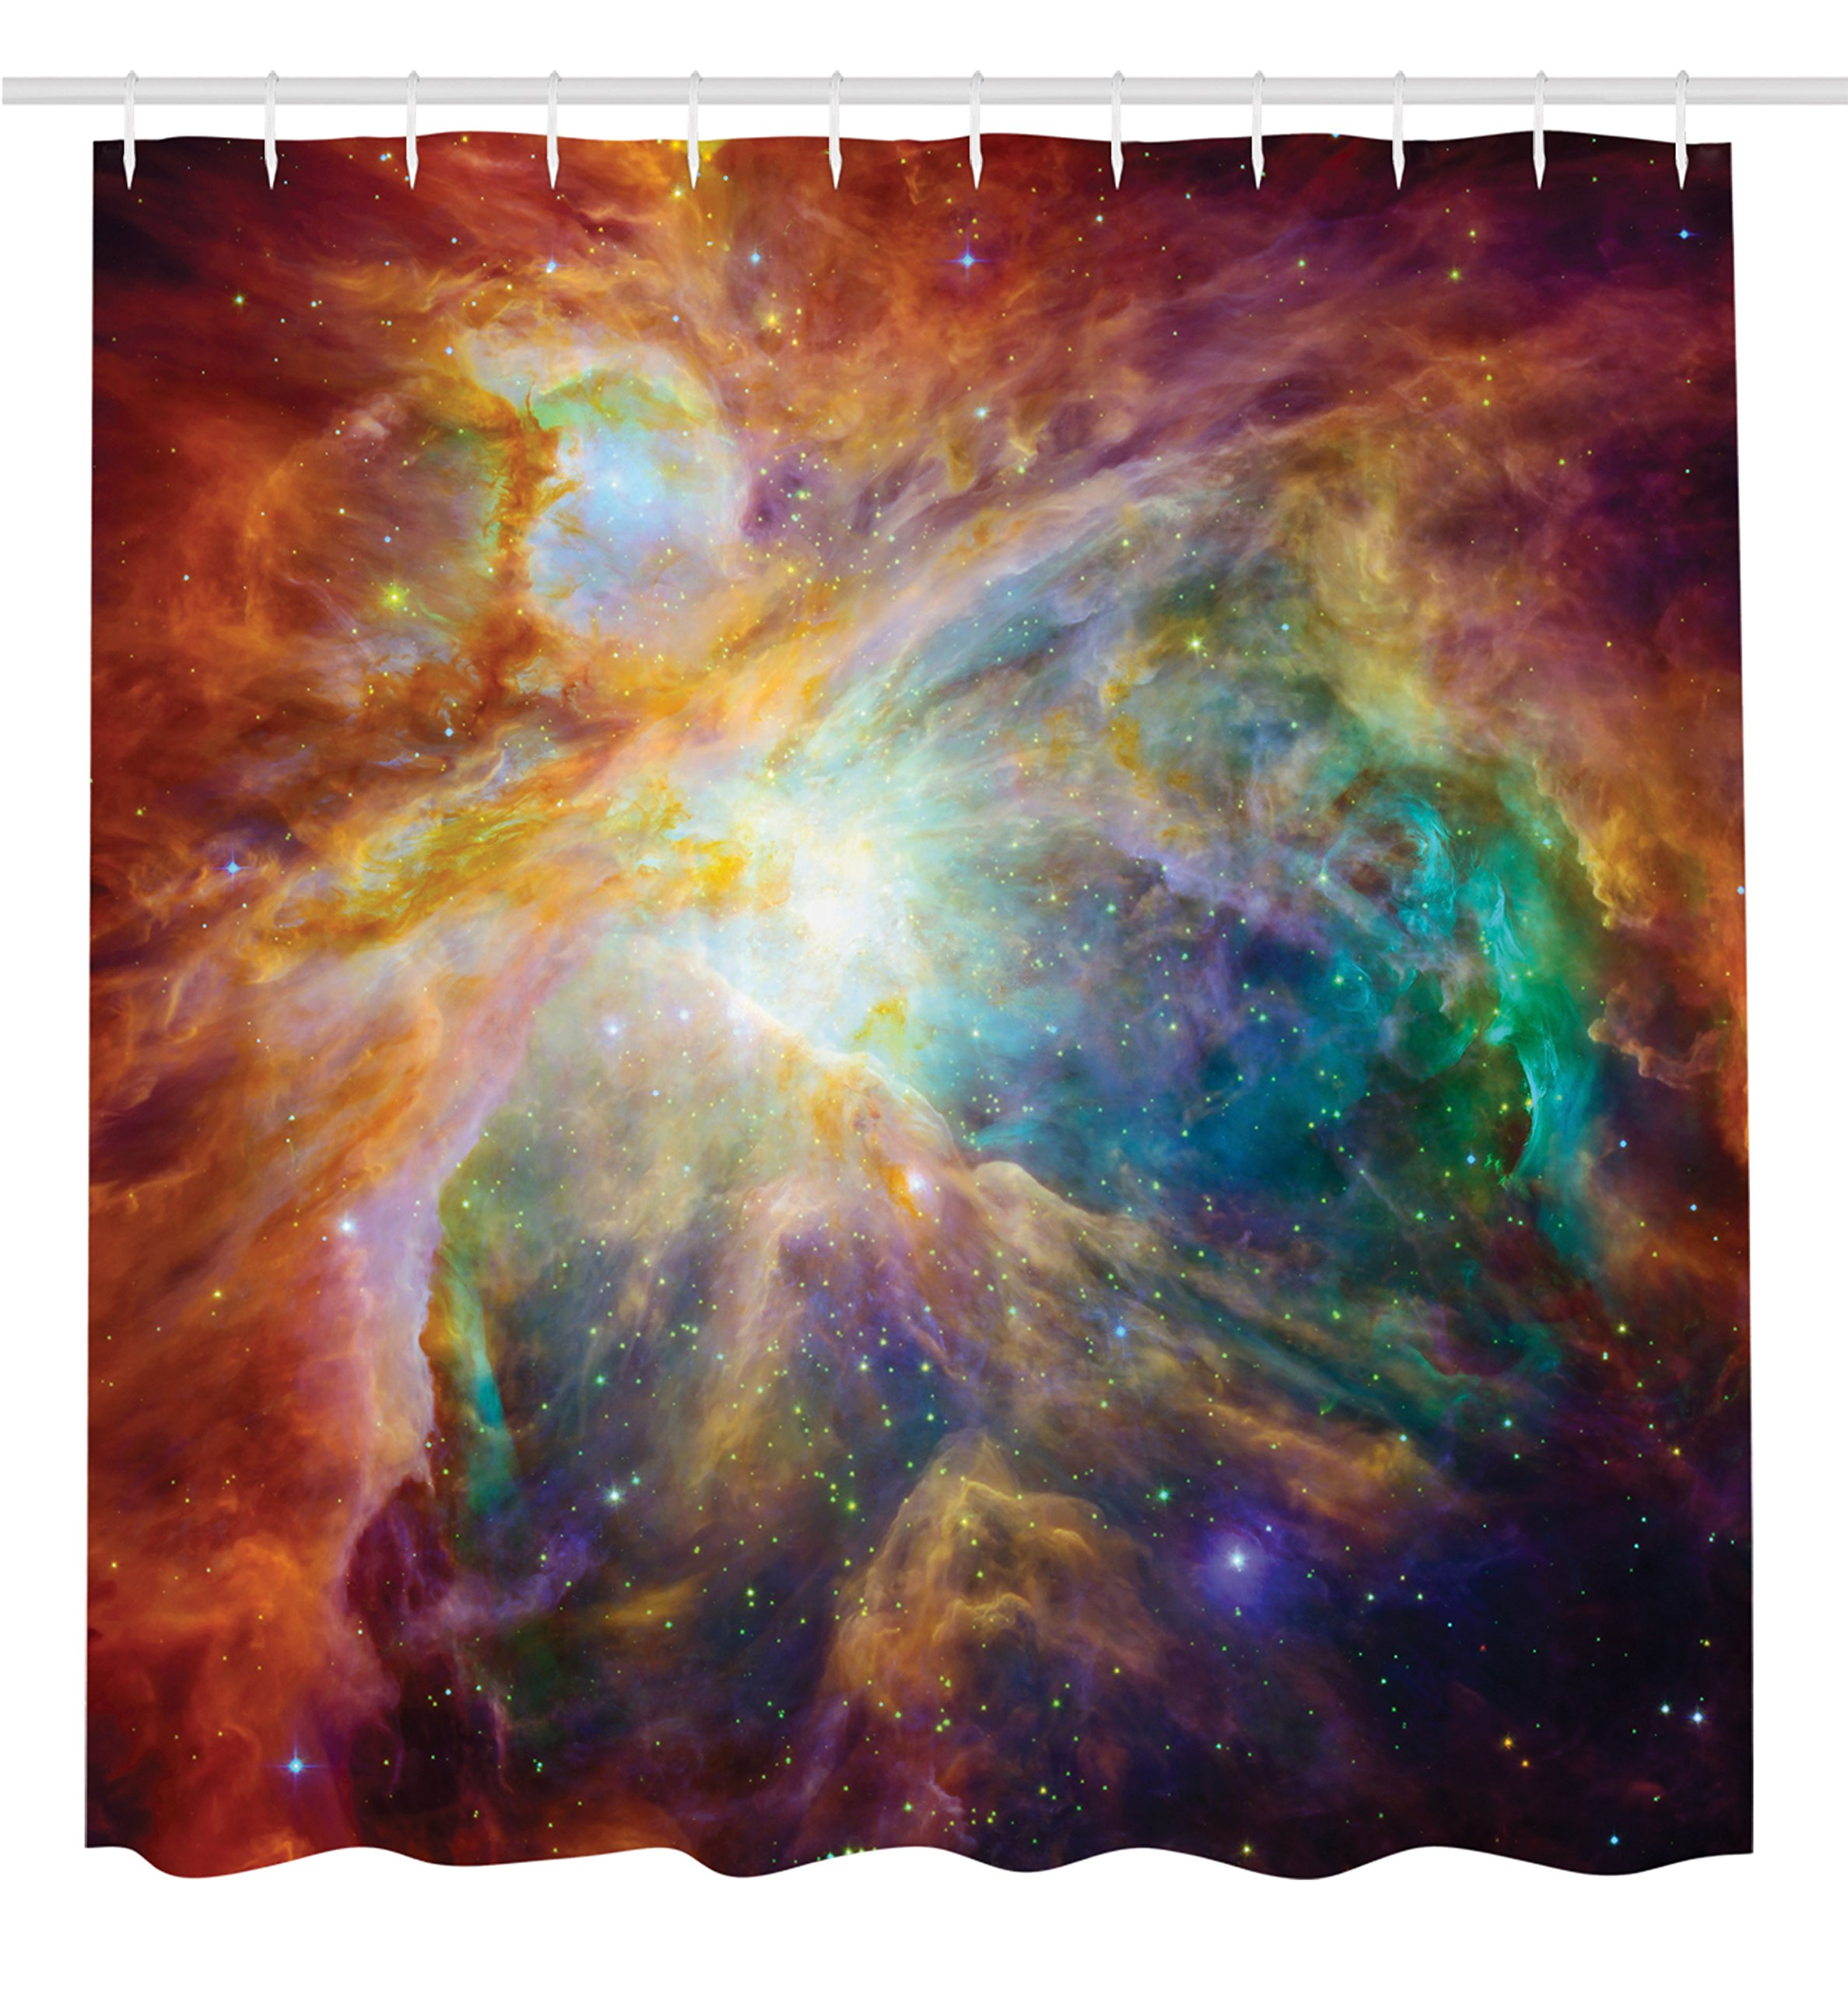 Ambesonne Outer Space Art Bathroom Decor Collection, Universe Abstract Nebula Galaxy Chakra Infinity Psychedelic Photography Print, Polyester Fabric Shower Curtain Set with Hooks, Colorful Design